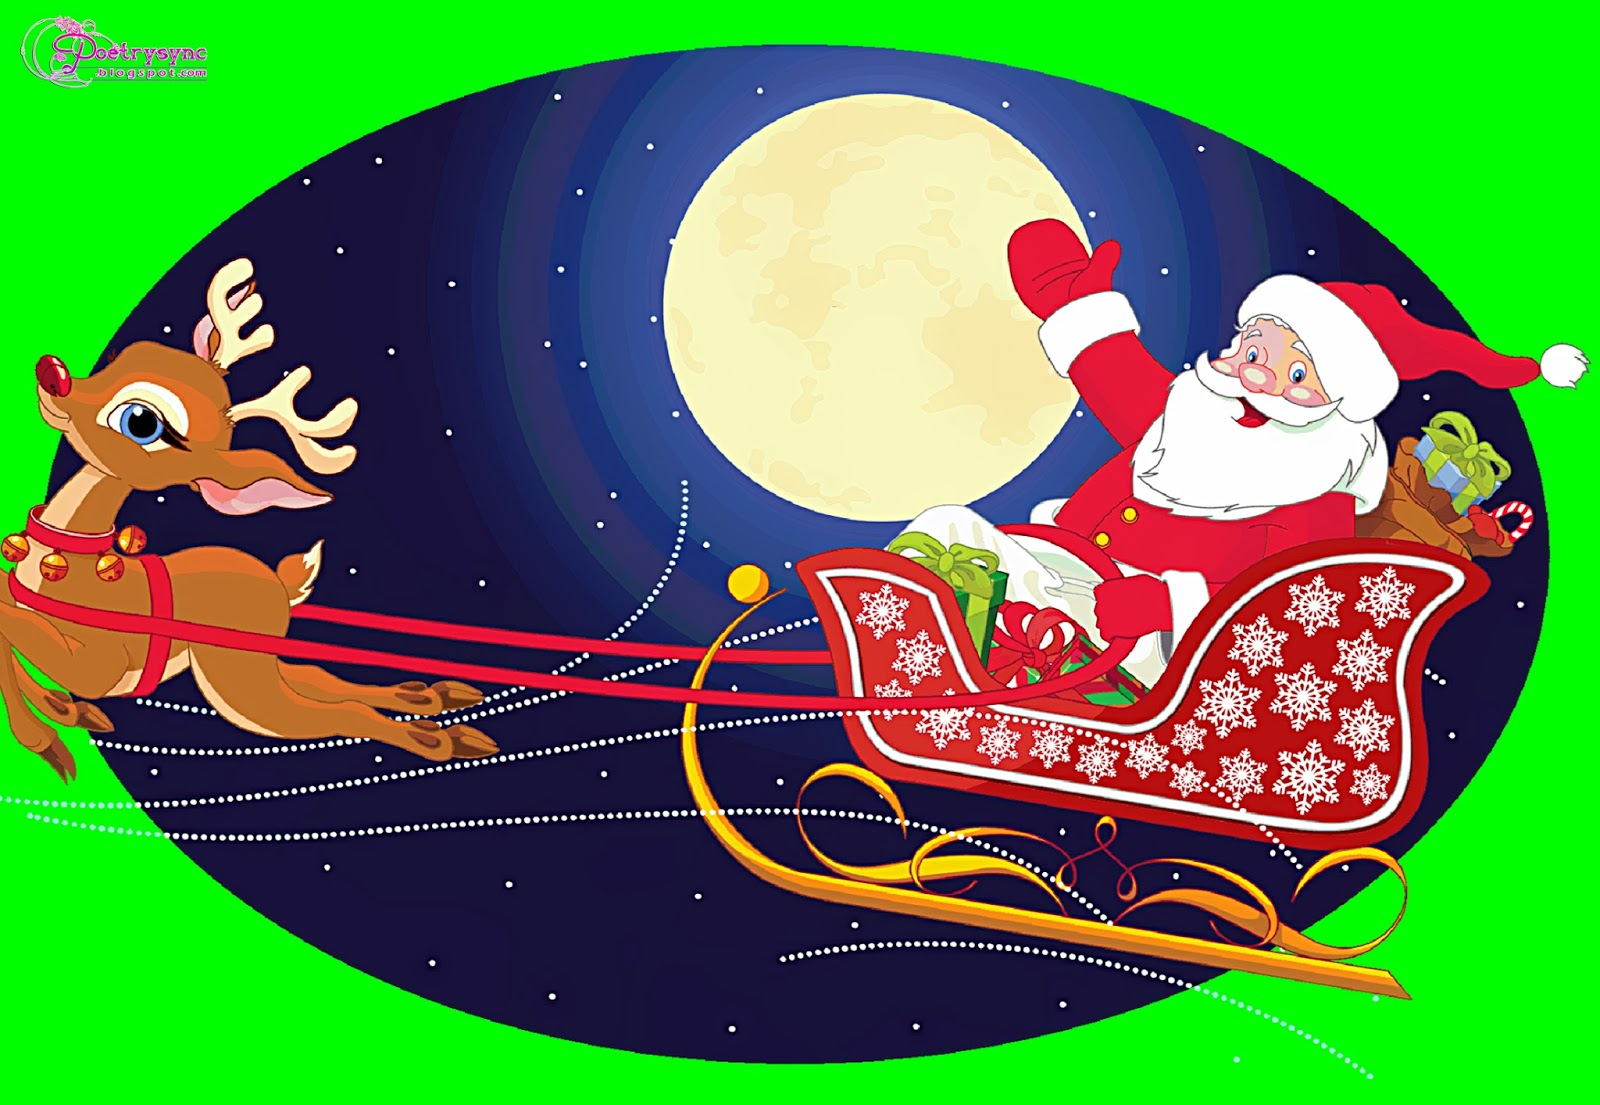 Merry Christmas clipart christmas celebration Christmas for festival pictures claus